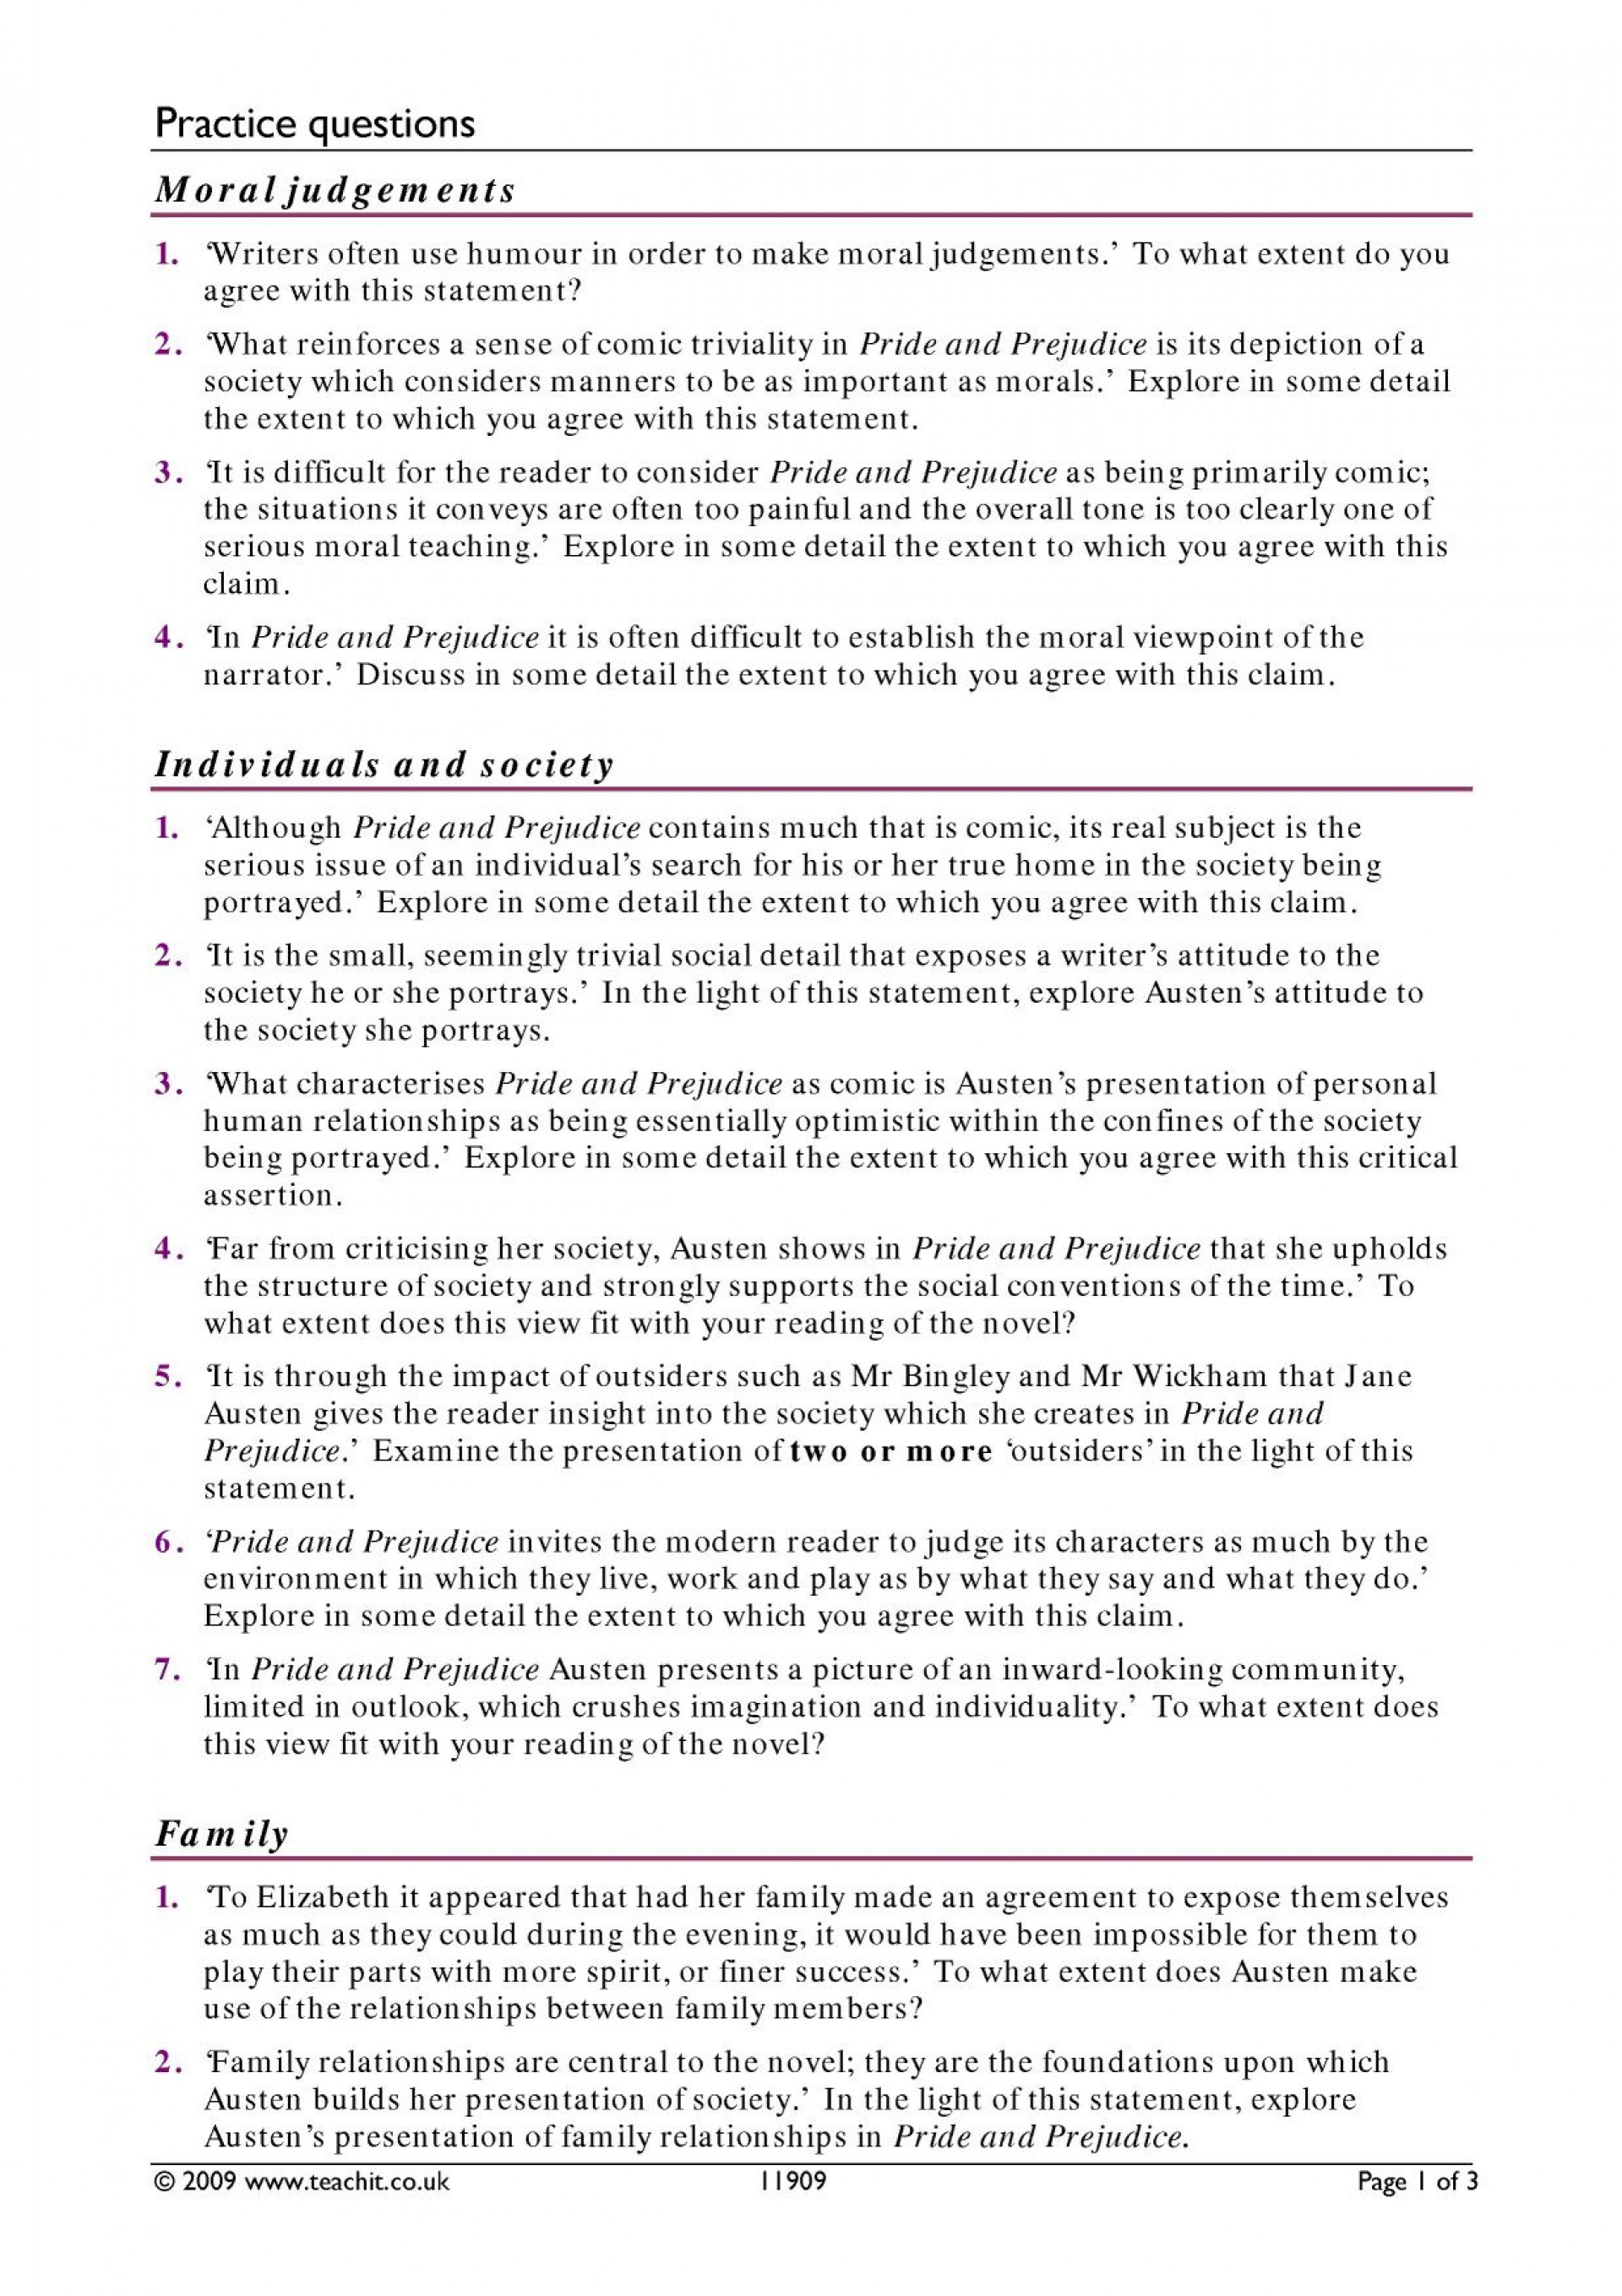 006 Essay Pride And Prejudice By Jane Austen Ks3 Write An On Goes Before Fall X My Nepal Country How To Outstanding Questions Answers Aqa Good For 1920